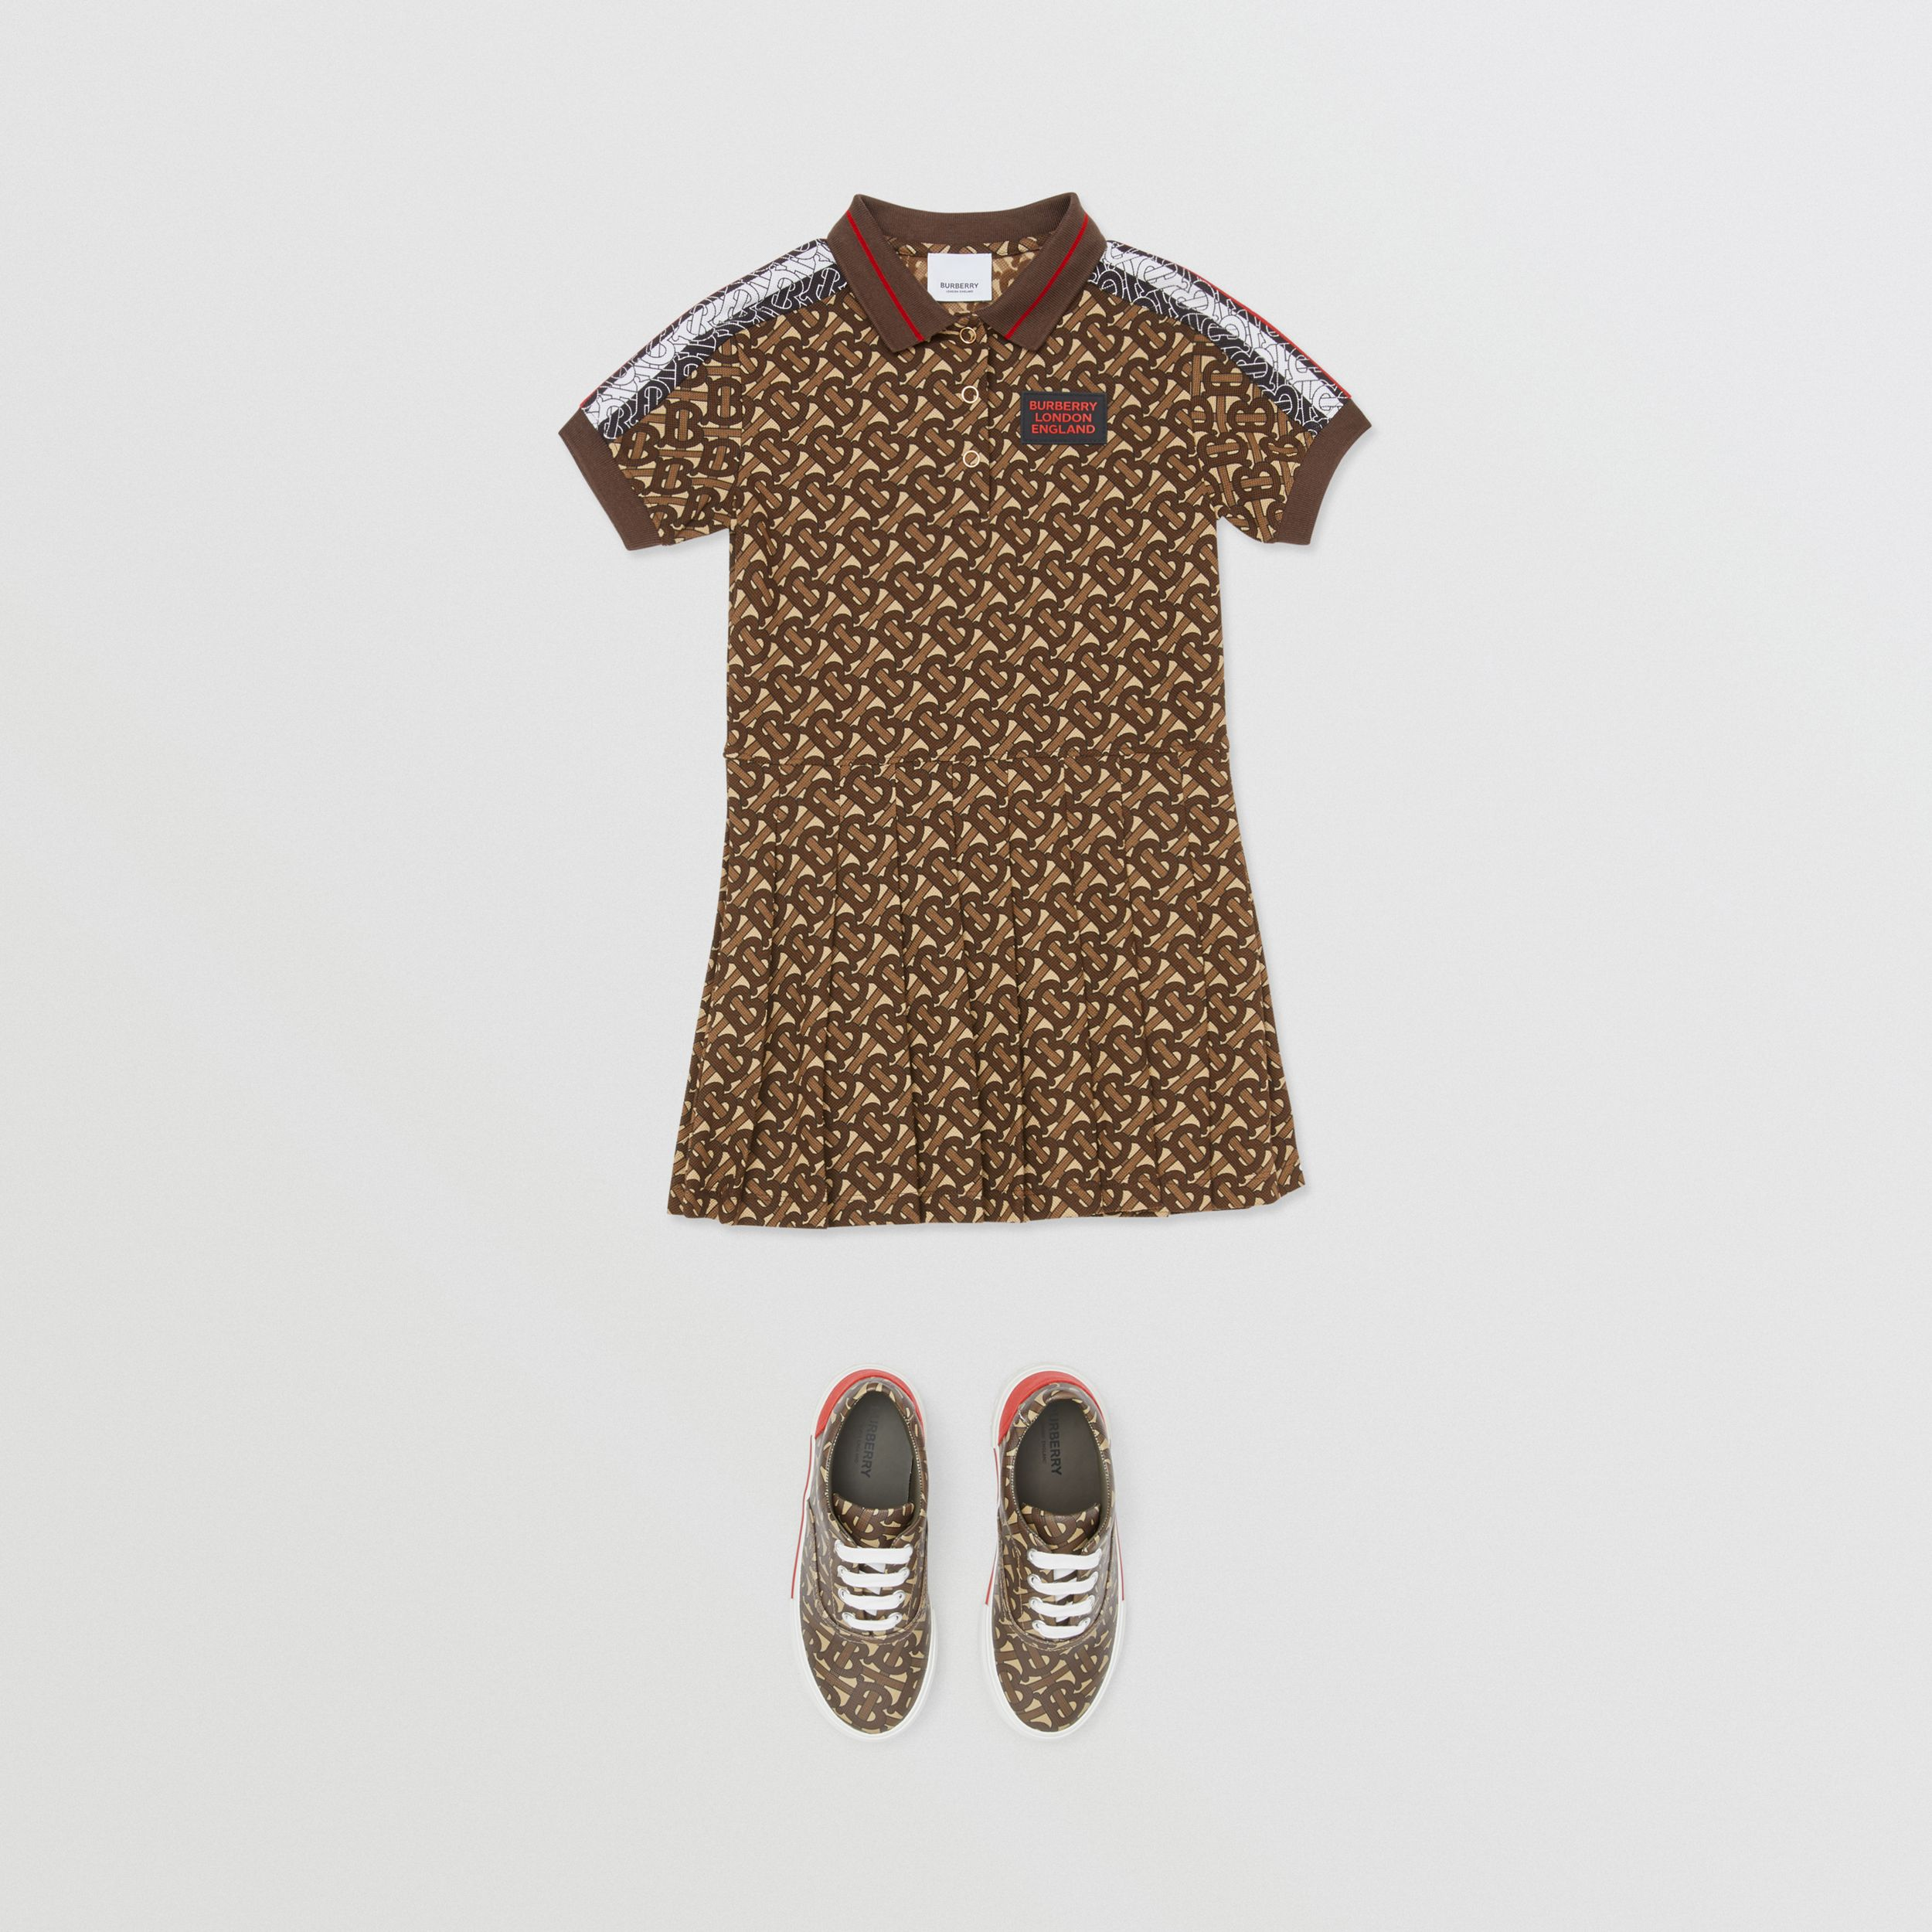 Monogram Stripe Print Cotton Polo Shirt Dress in Bridle Brown | Burberry - 3